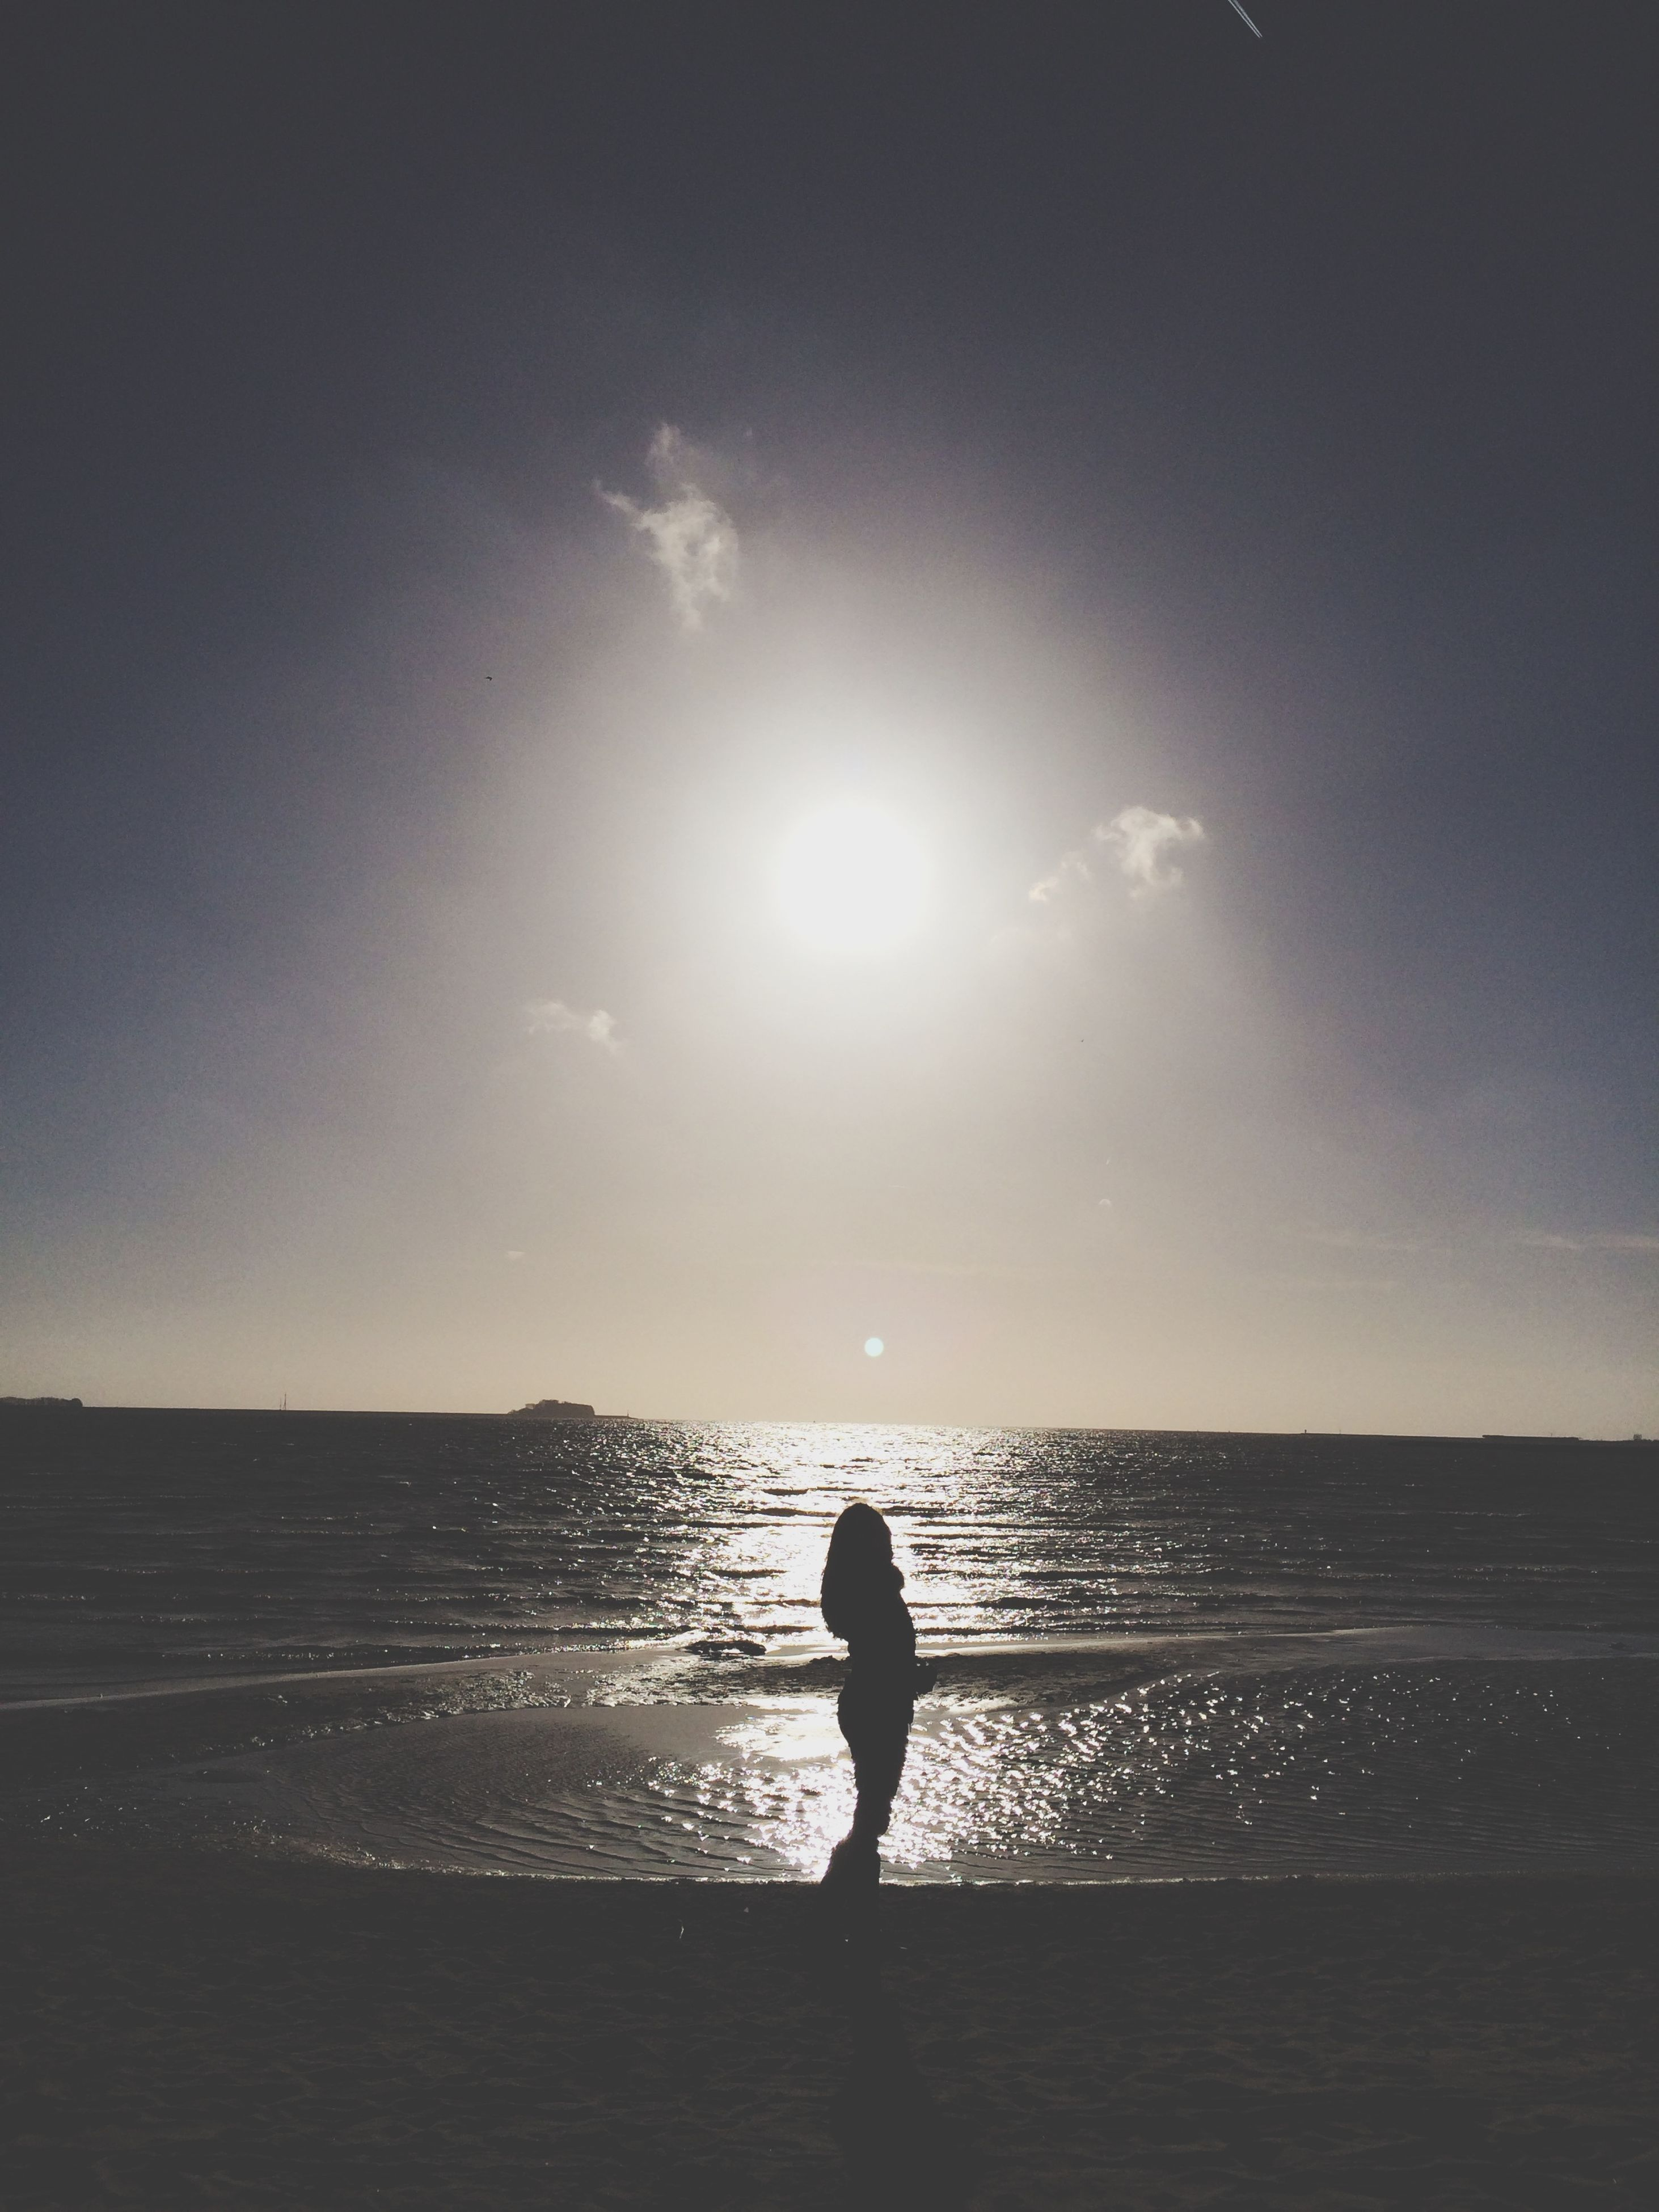 sea, water, horizon over water, silhouette, sun, beach, tranquil scene, tranquility, scenics, shore, sky, beauty in nature, standing, full length, nature, sunlight, idyllic, leisure activity